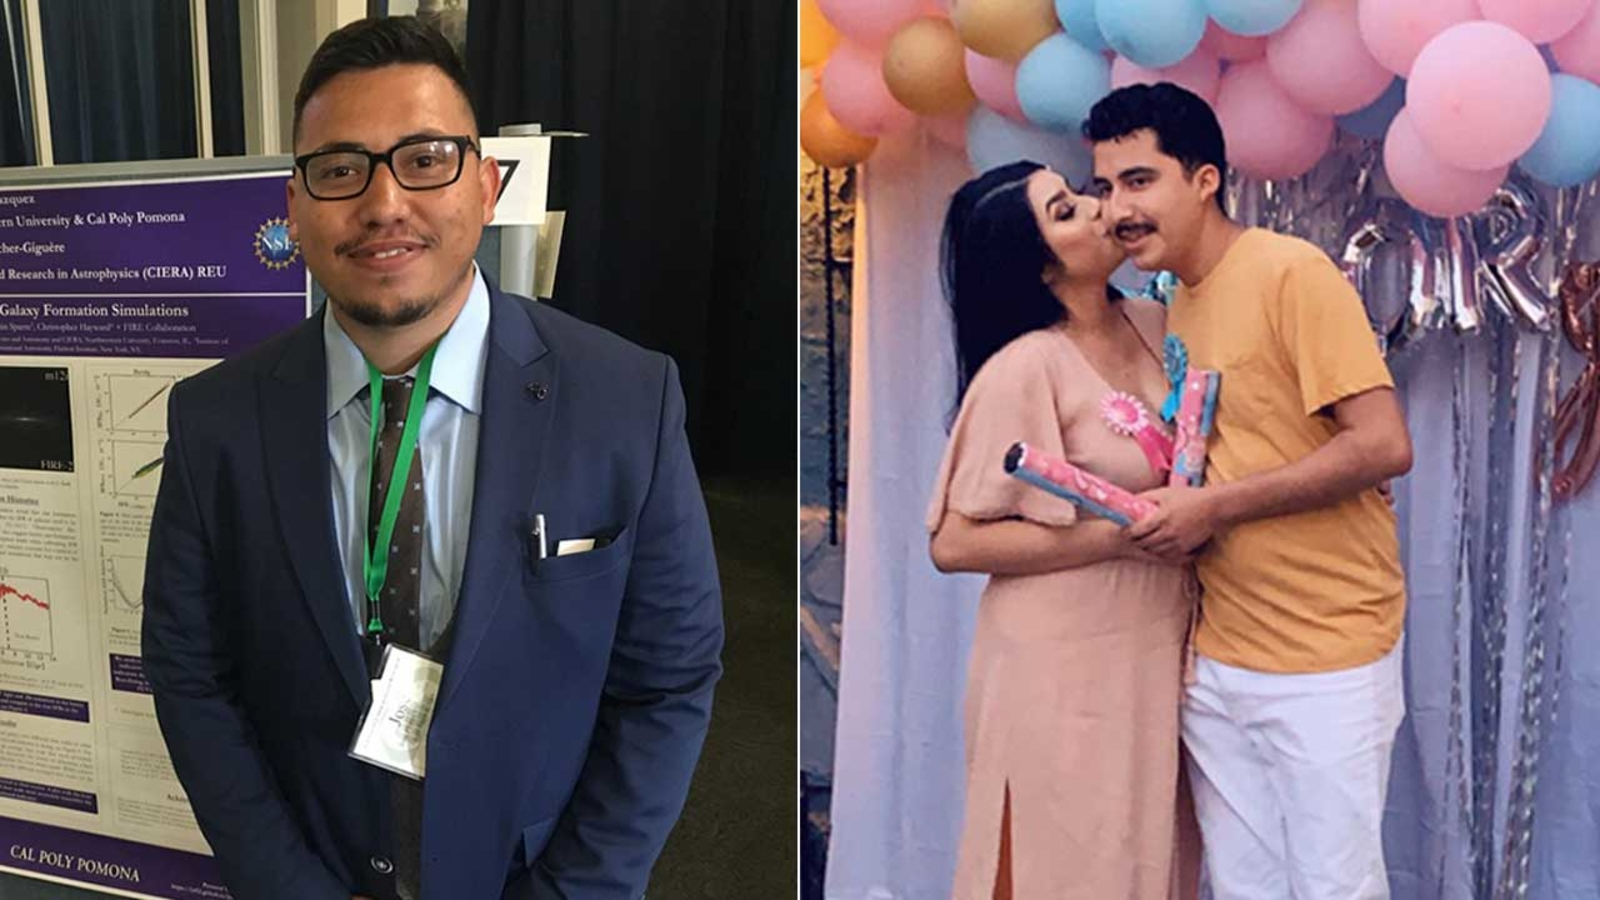 2 deceased victims in South Los Angeles shooting ID'd as UC Irvine grad student, father-to-be